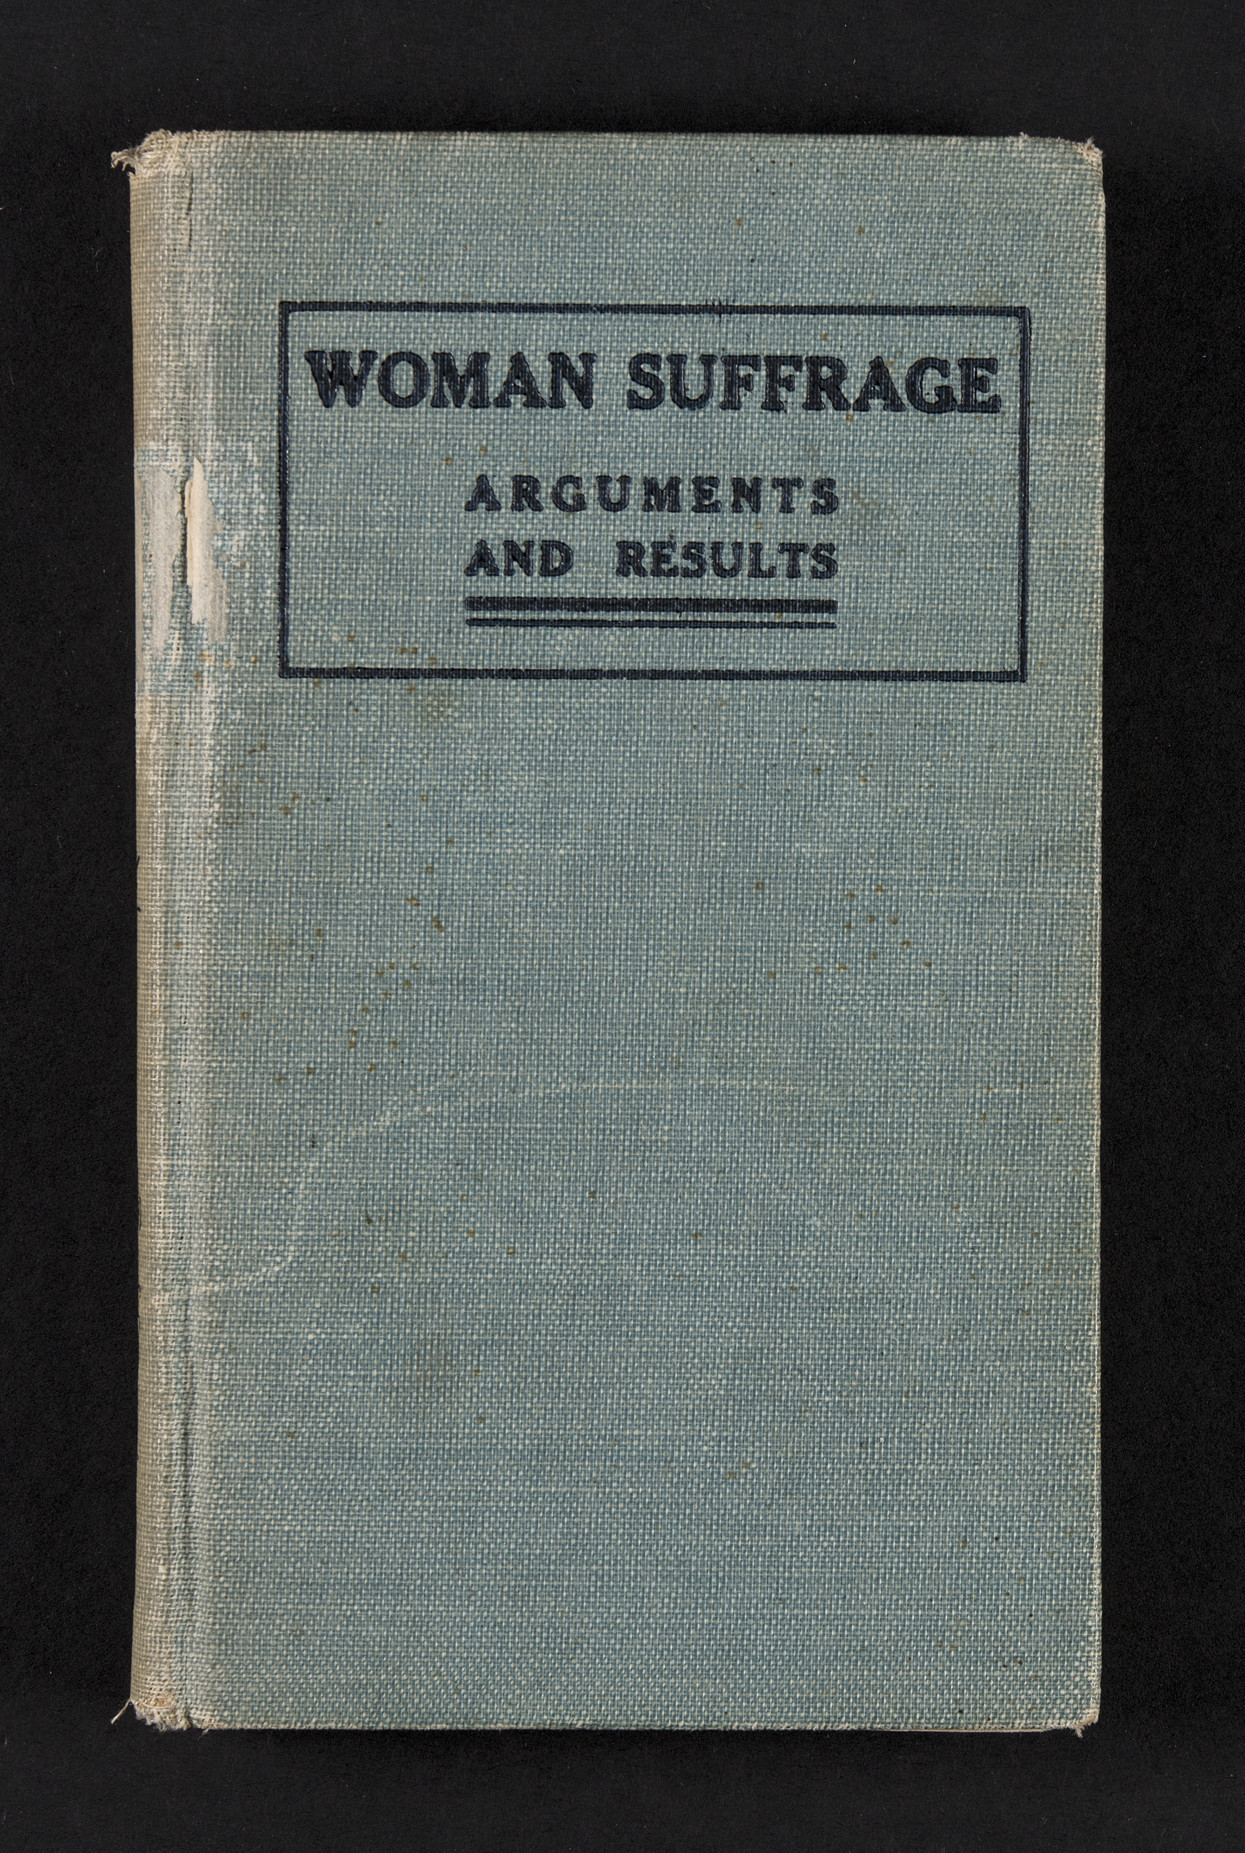 Various Pro-Suffrage Booklets, ca. 1890-1910<br />